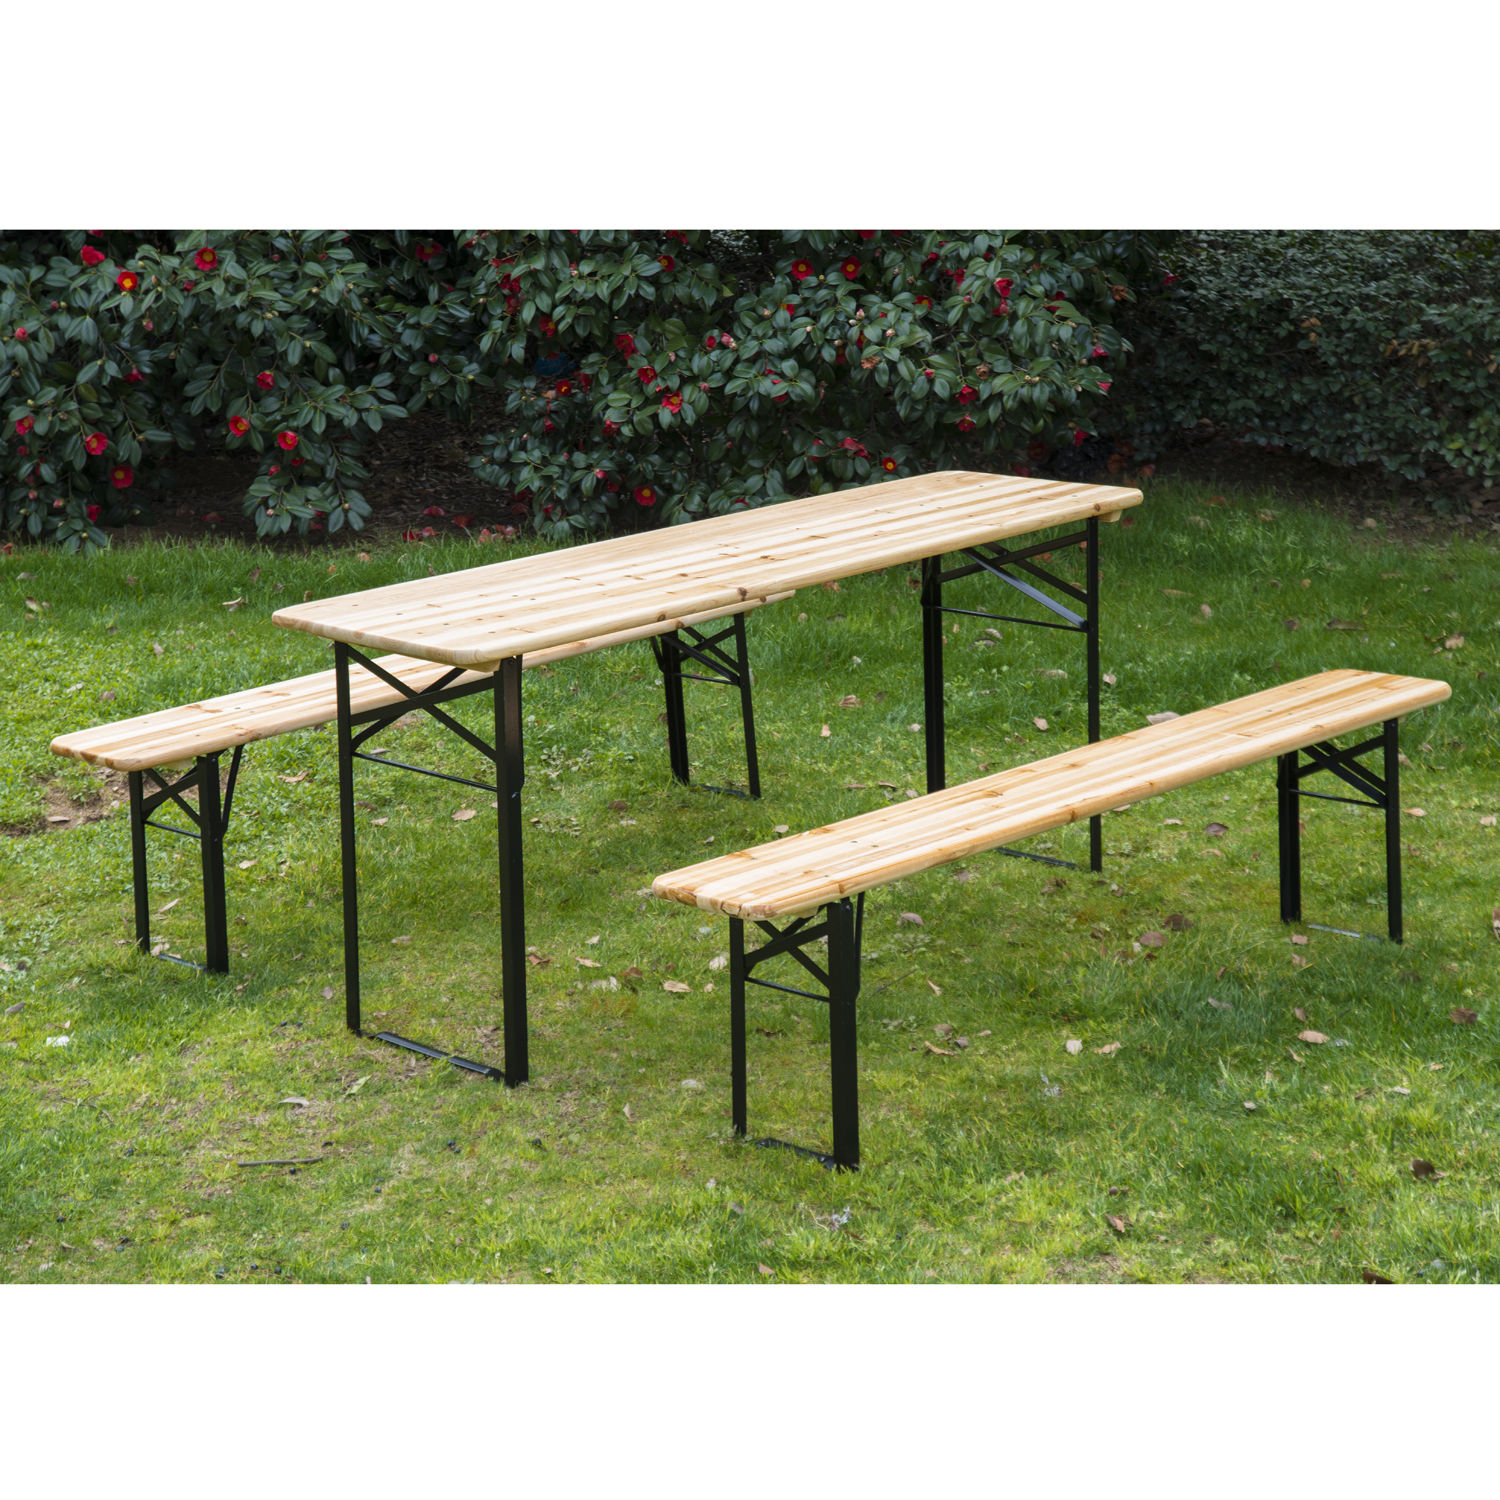 3Pcs Wooden Beer Table Bench Set Patio Folding Picnic Table Chair Garden  Yard